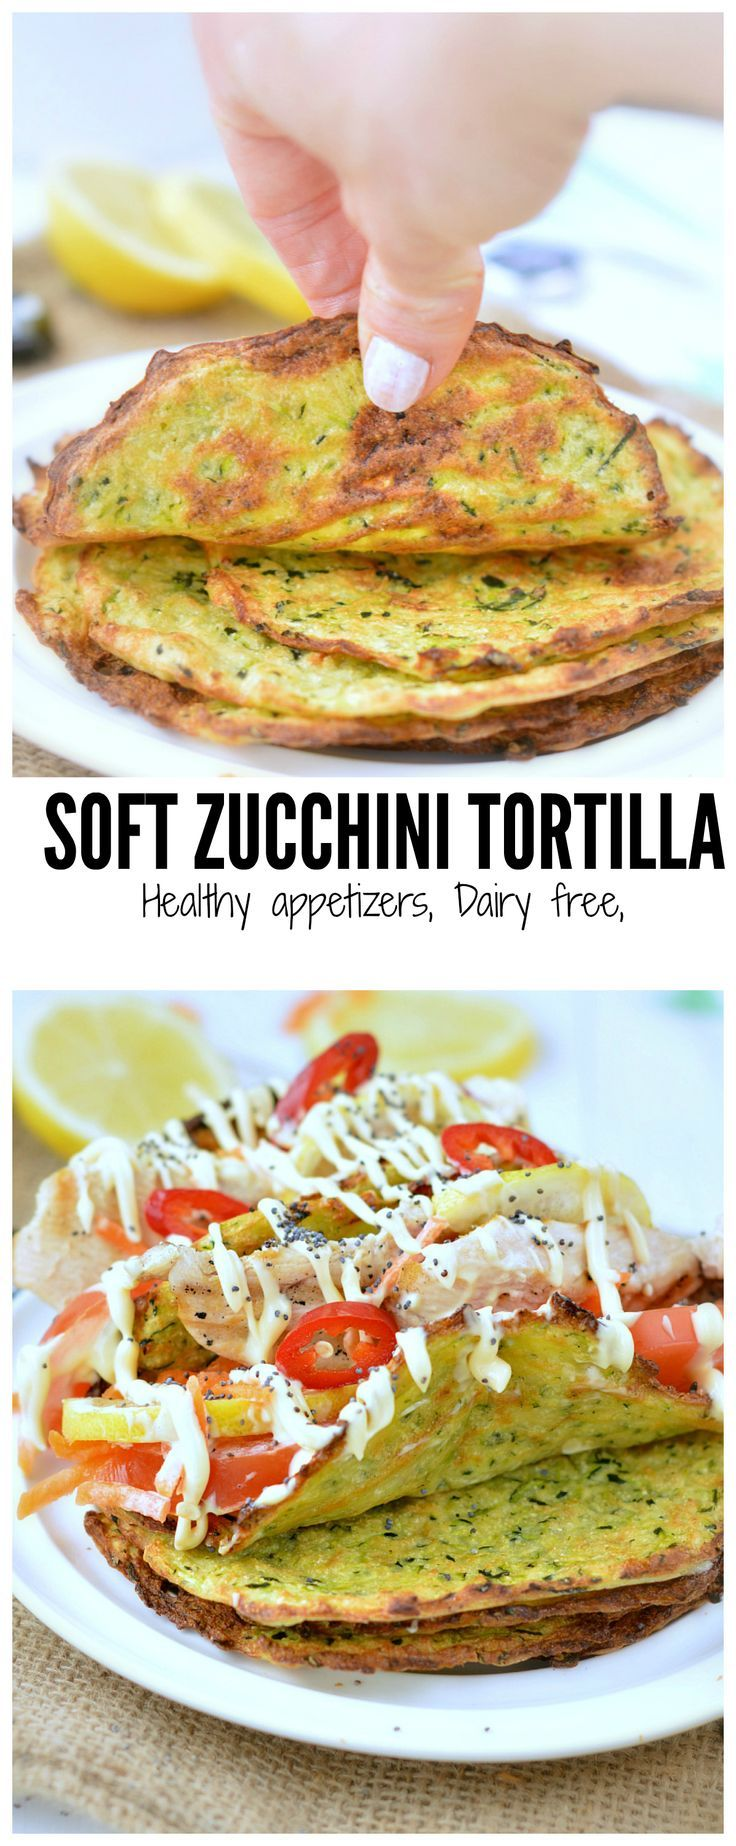 Clean eating tortilla recipes | Healthy zucchini tortillas | Clean eating finger foods | Clean eating easy recipes